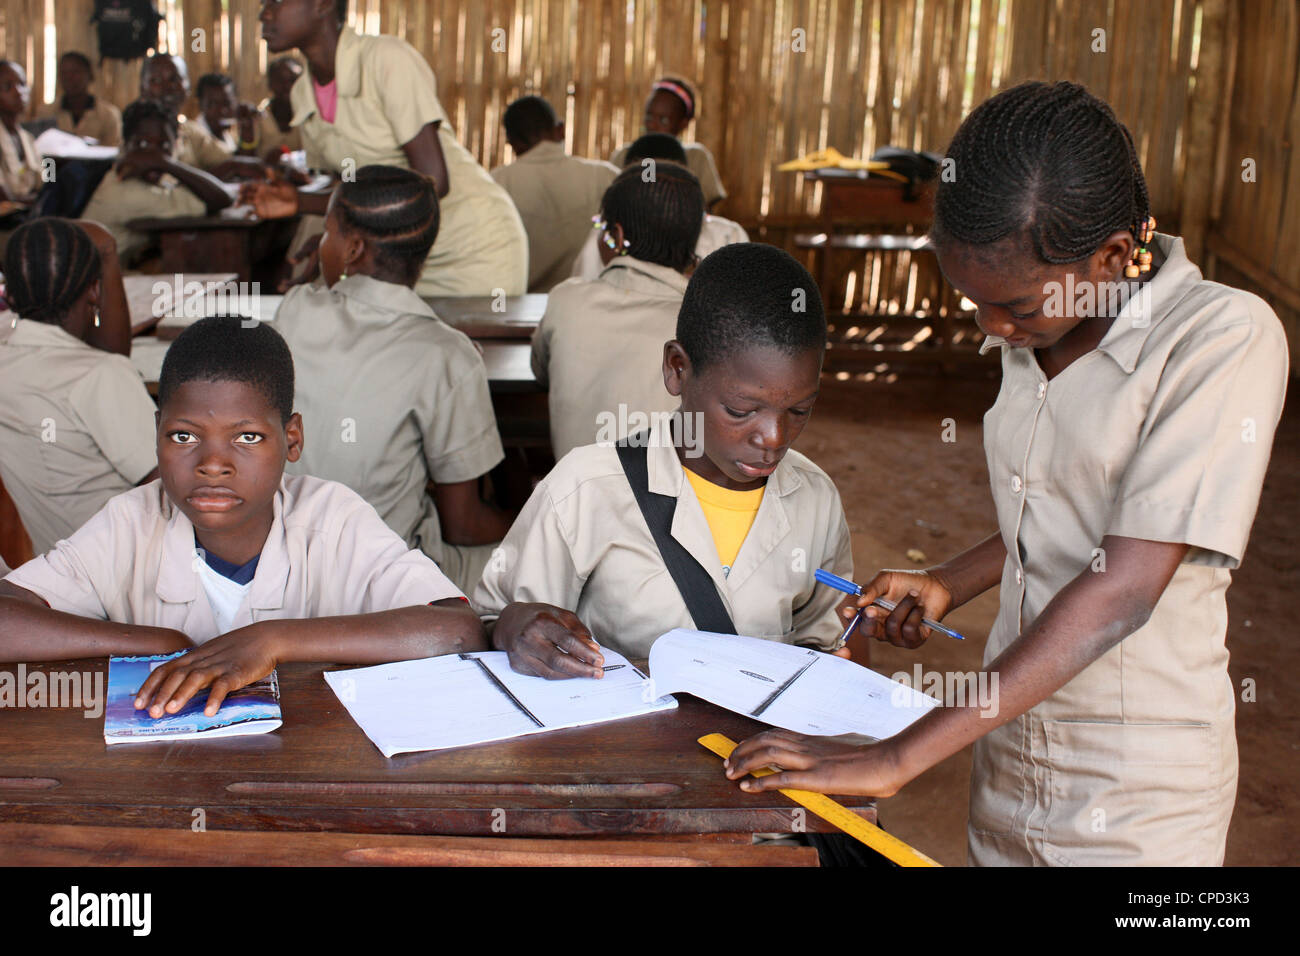 Secondary school in Africa, Hevie, Benin, West Africa, Africa Stock Photo